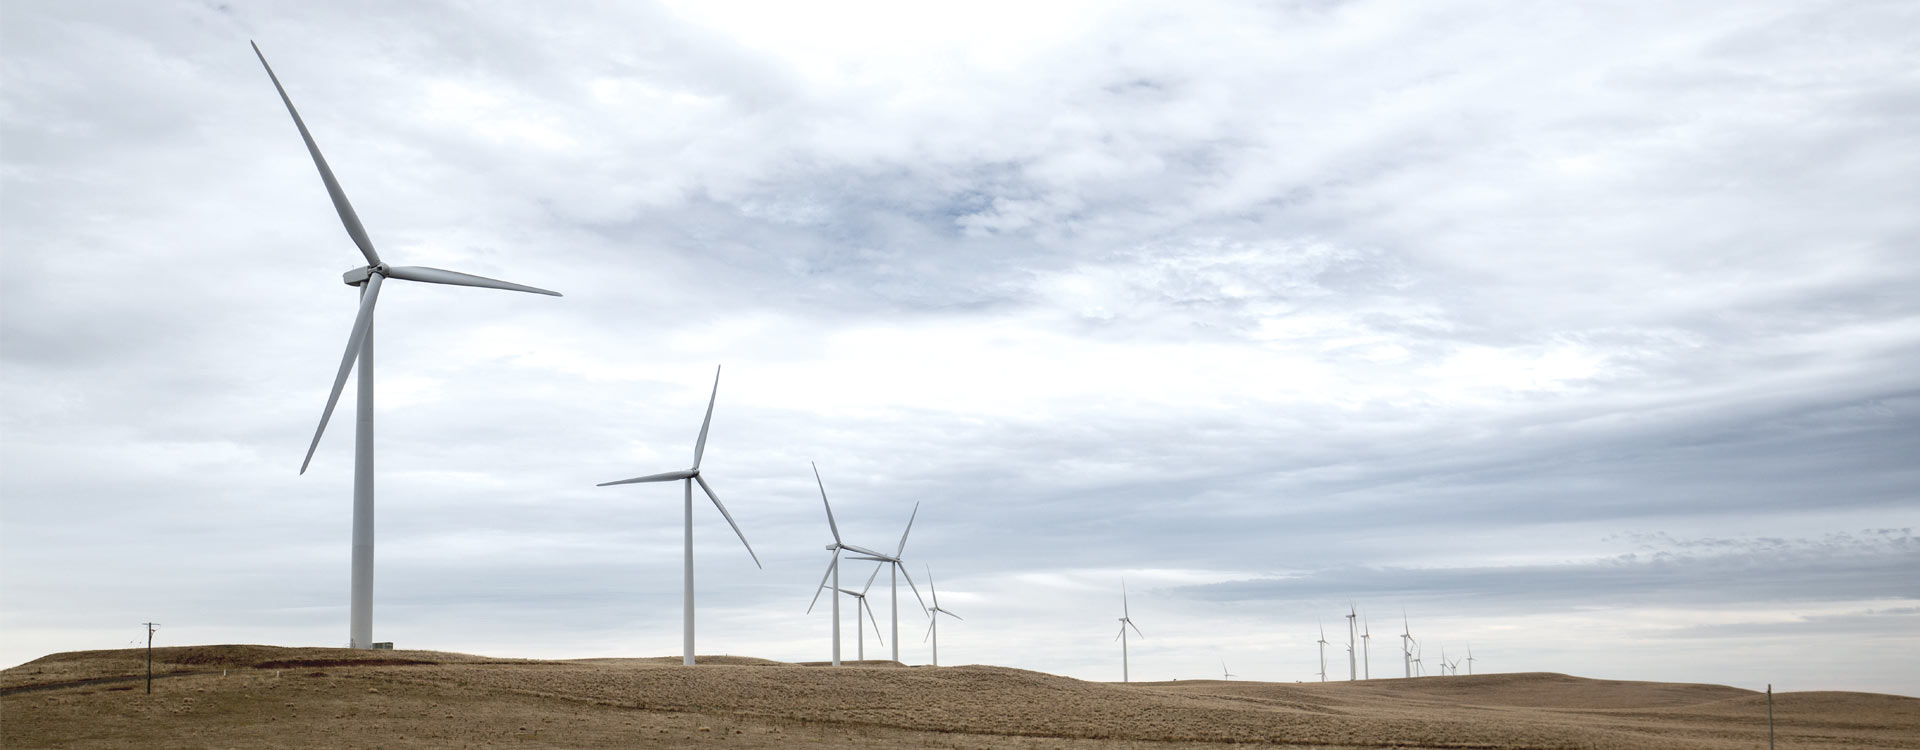 bnr-Silverton-Wind-Farm-Power-and-Energy